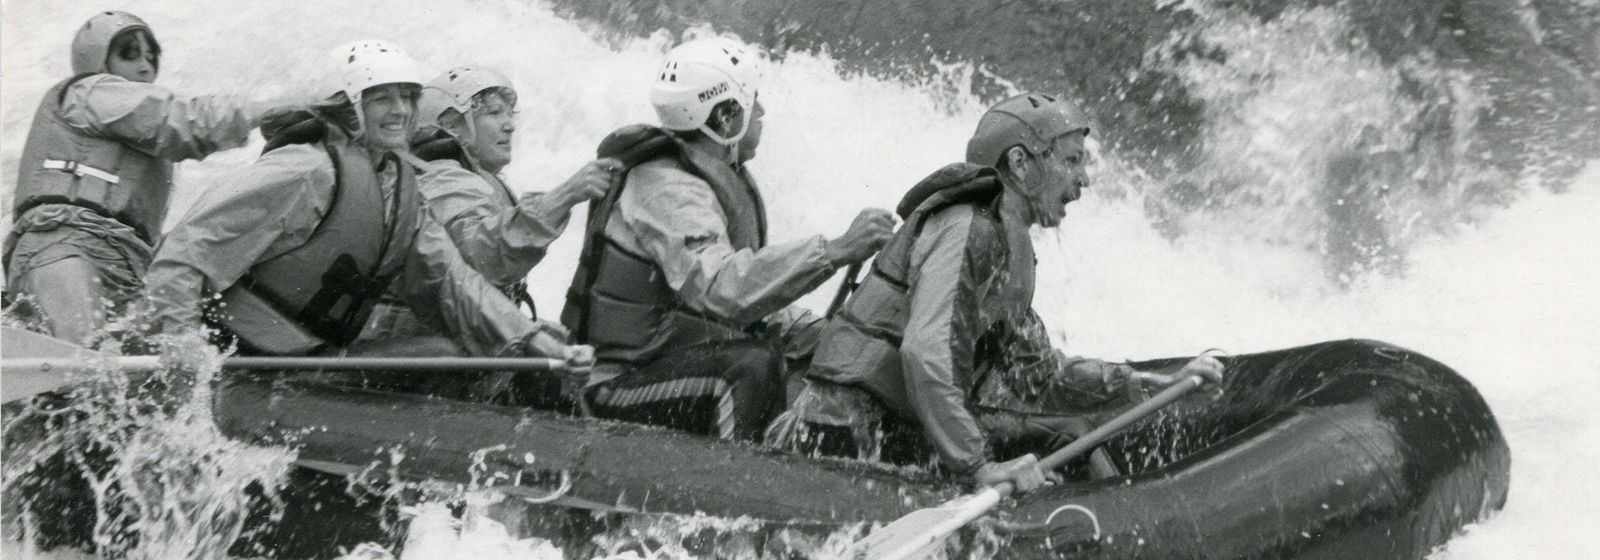 Retro photos: A (rafting) trip down memory lane